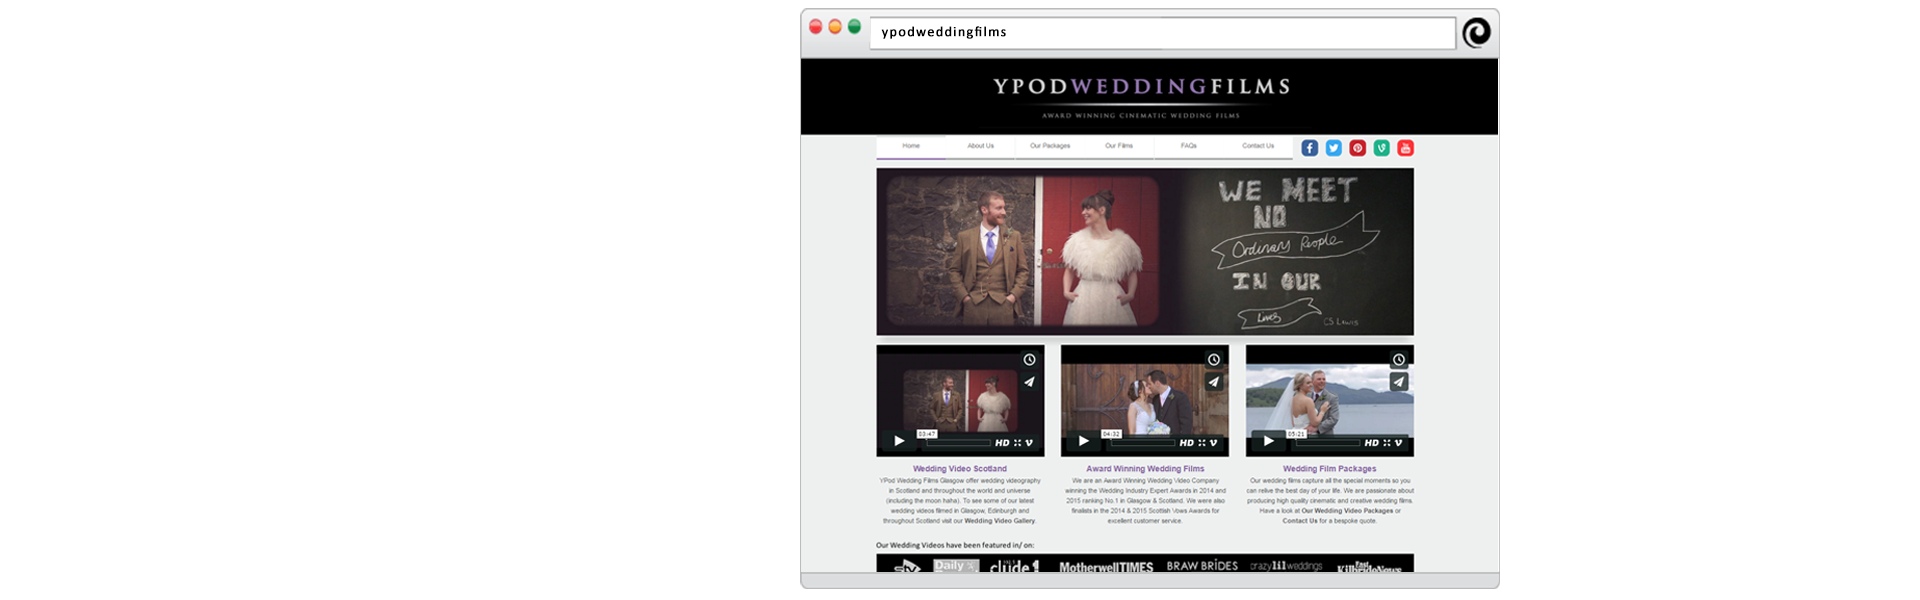 YPod Media Web Design Glasgow Scotland Slider - YPod Wedding Films